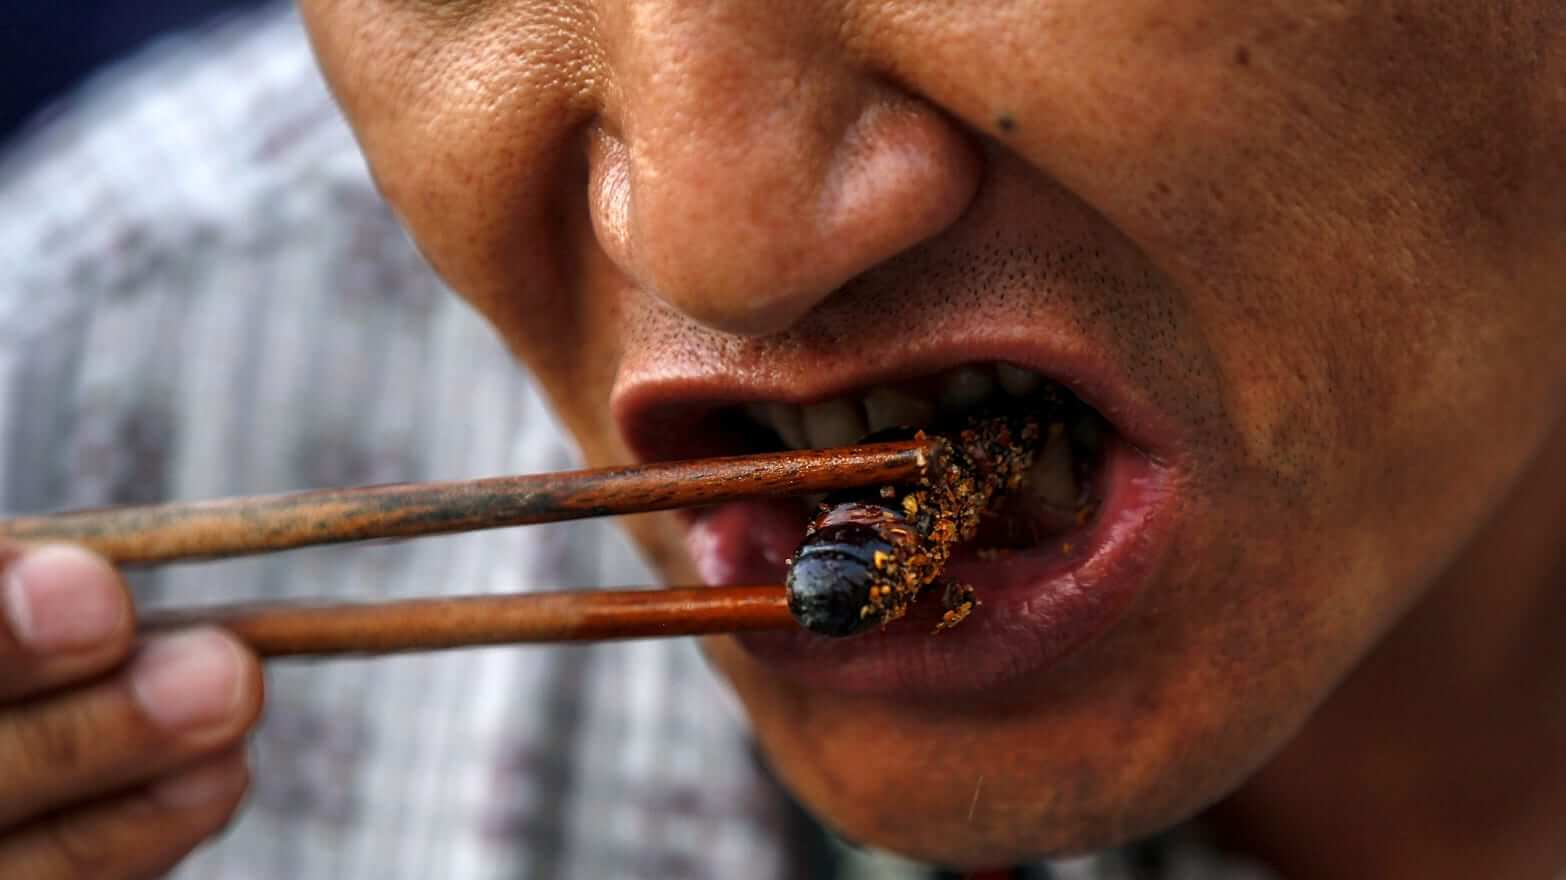 Could Eating Bugs Lead To A Powerful Race That Can Outlive Others?